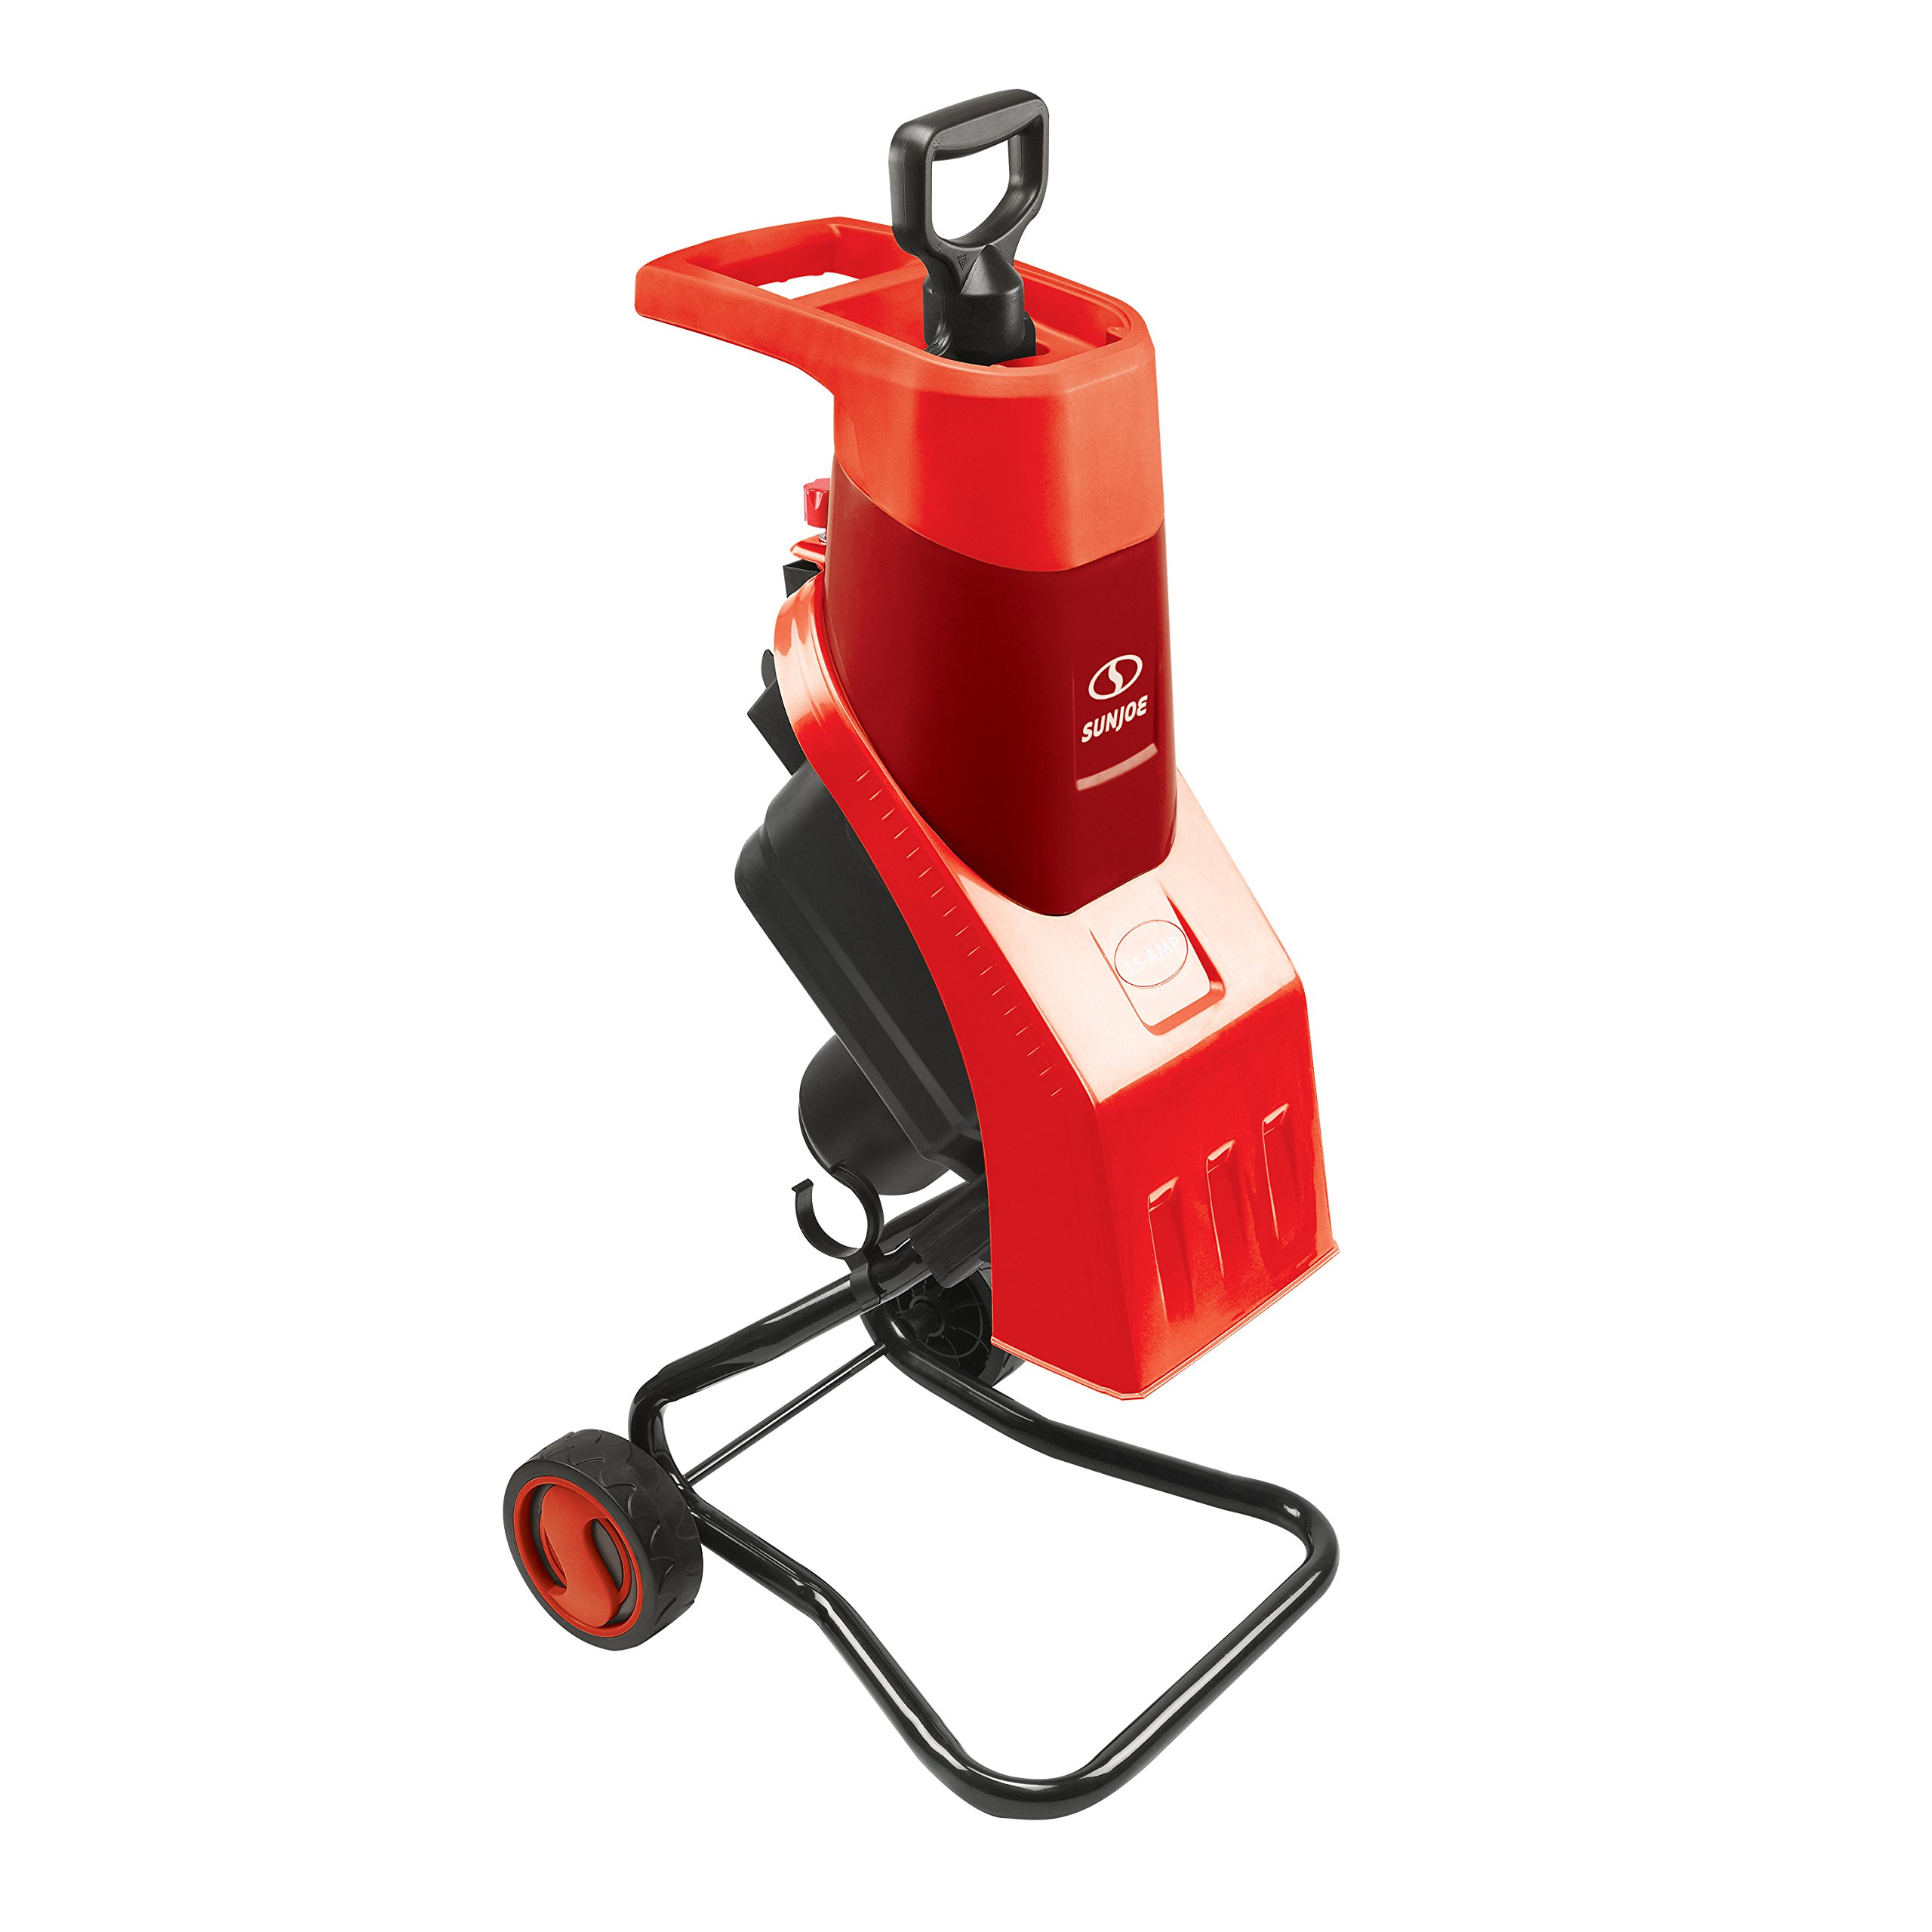 Sun Joe CJ602E-RED 15-Amp Electric Wood Chipper/Shredder, RED